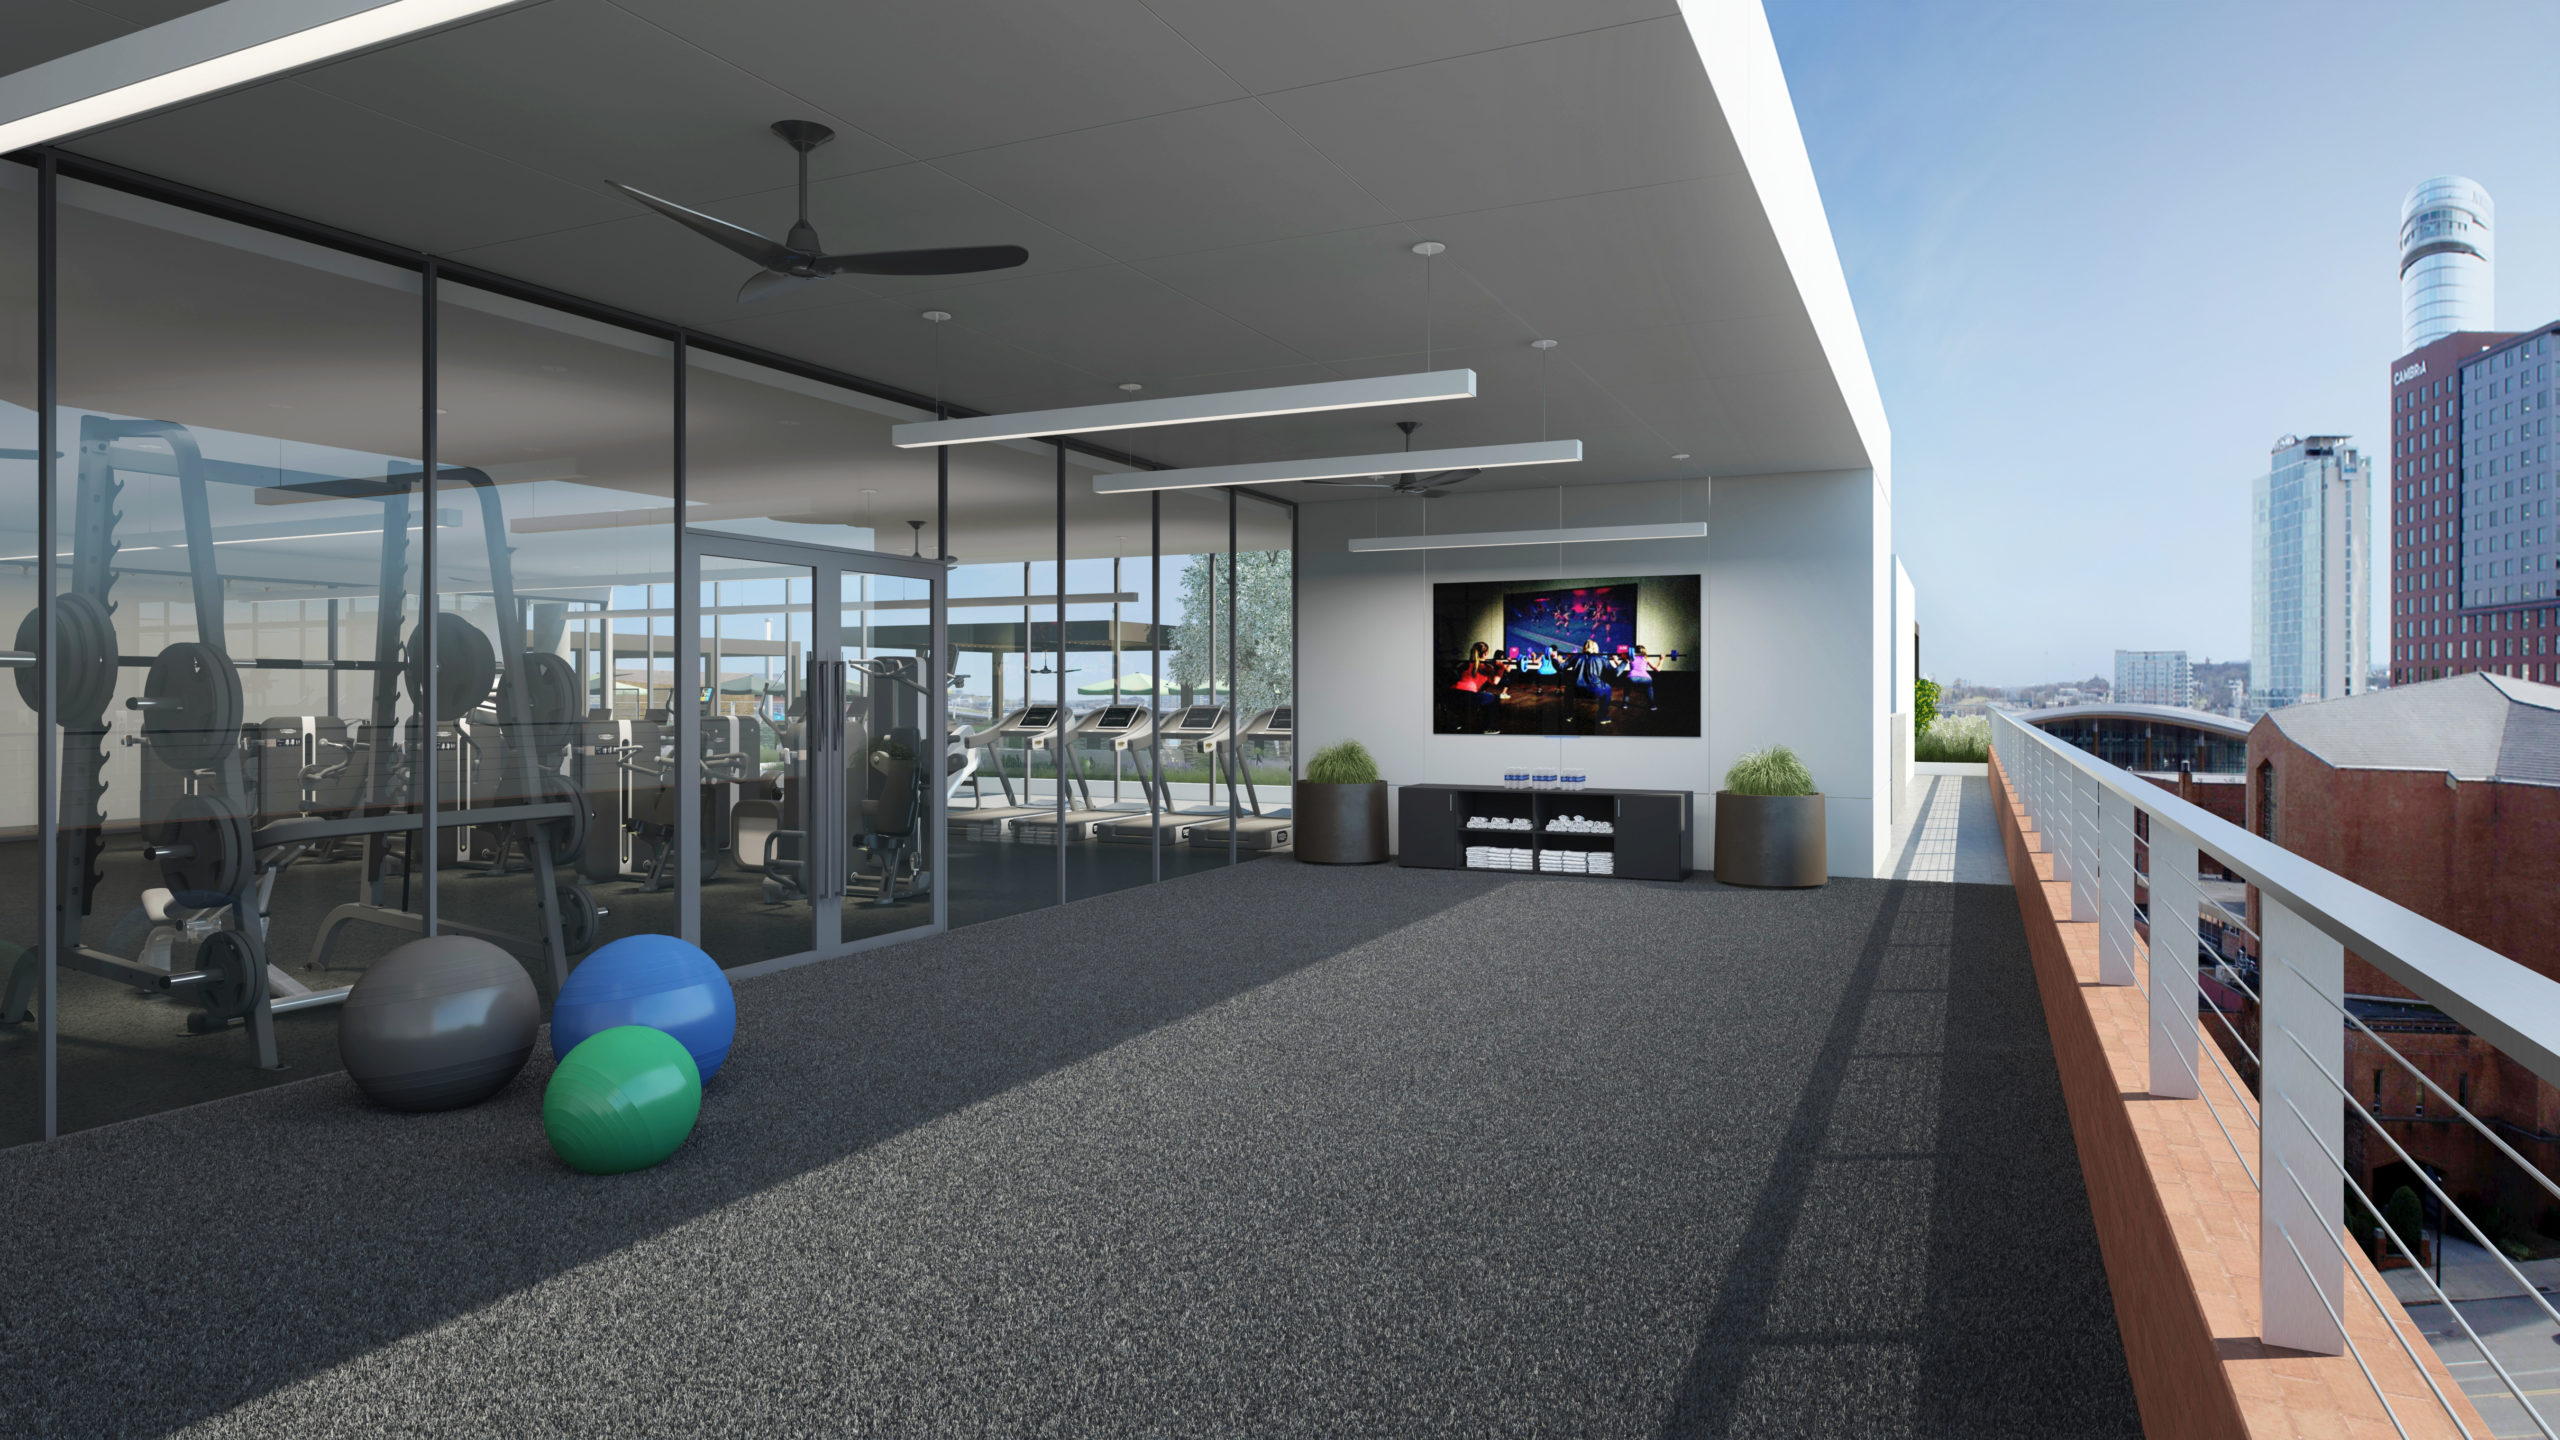 outdoor fitness center with fitness balls and tv